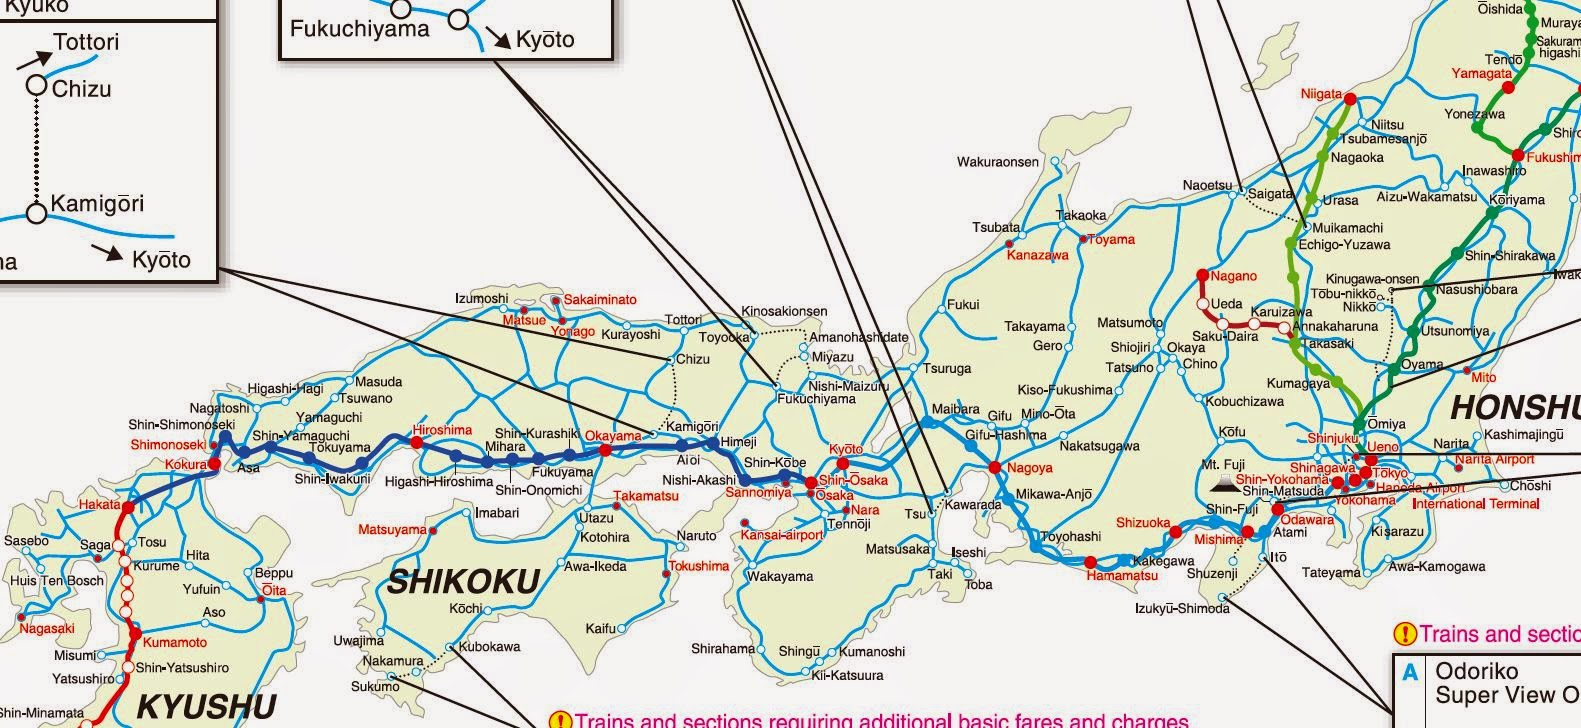 Japan Rail Network Map - Japan map rail